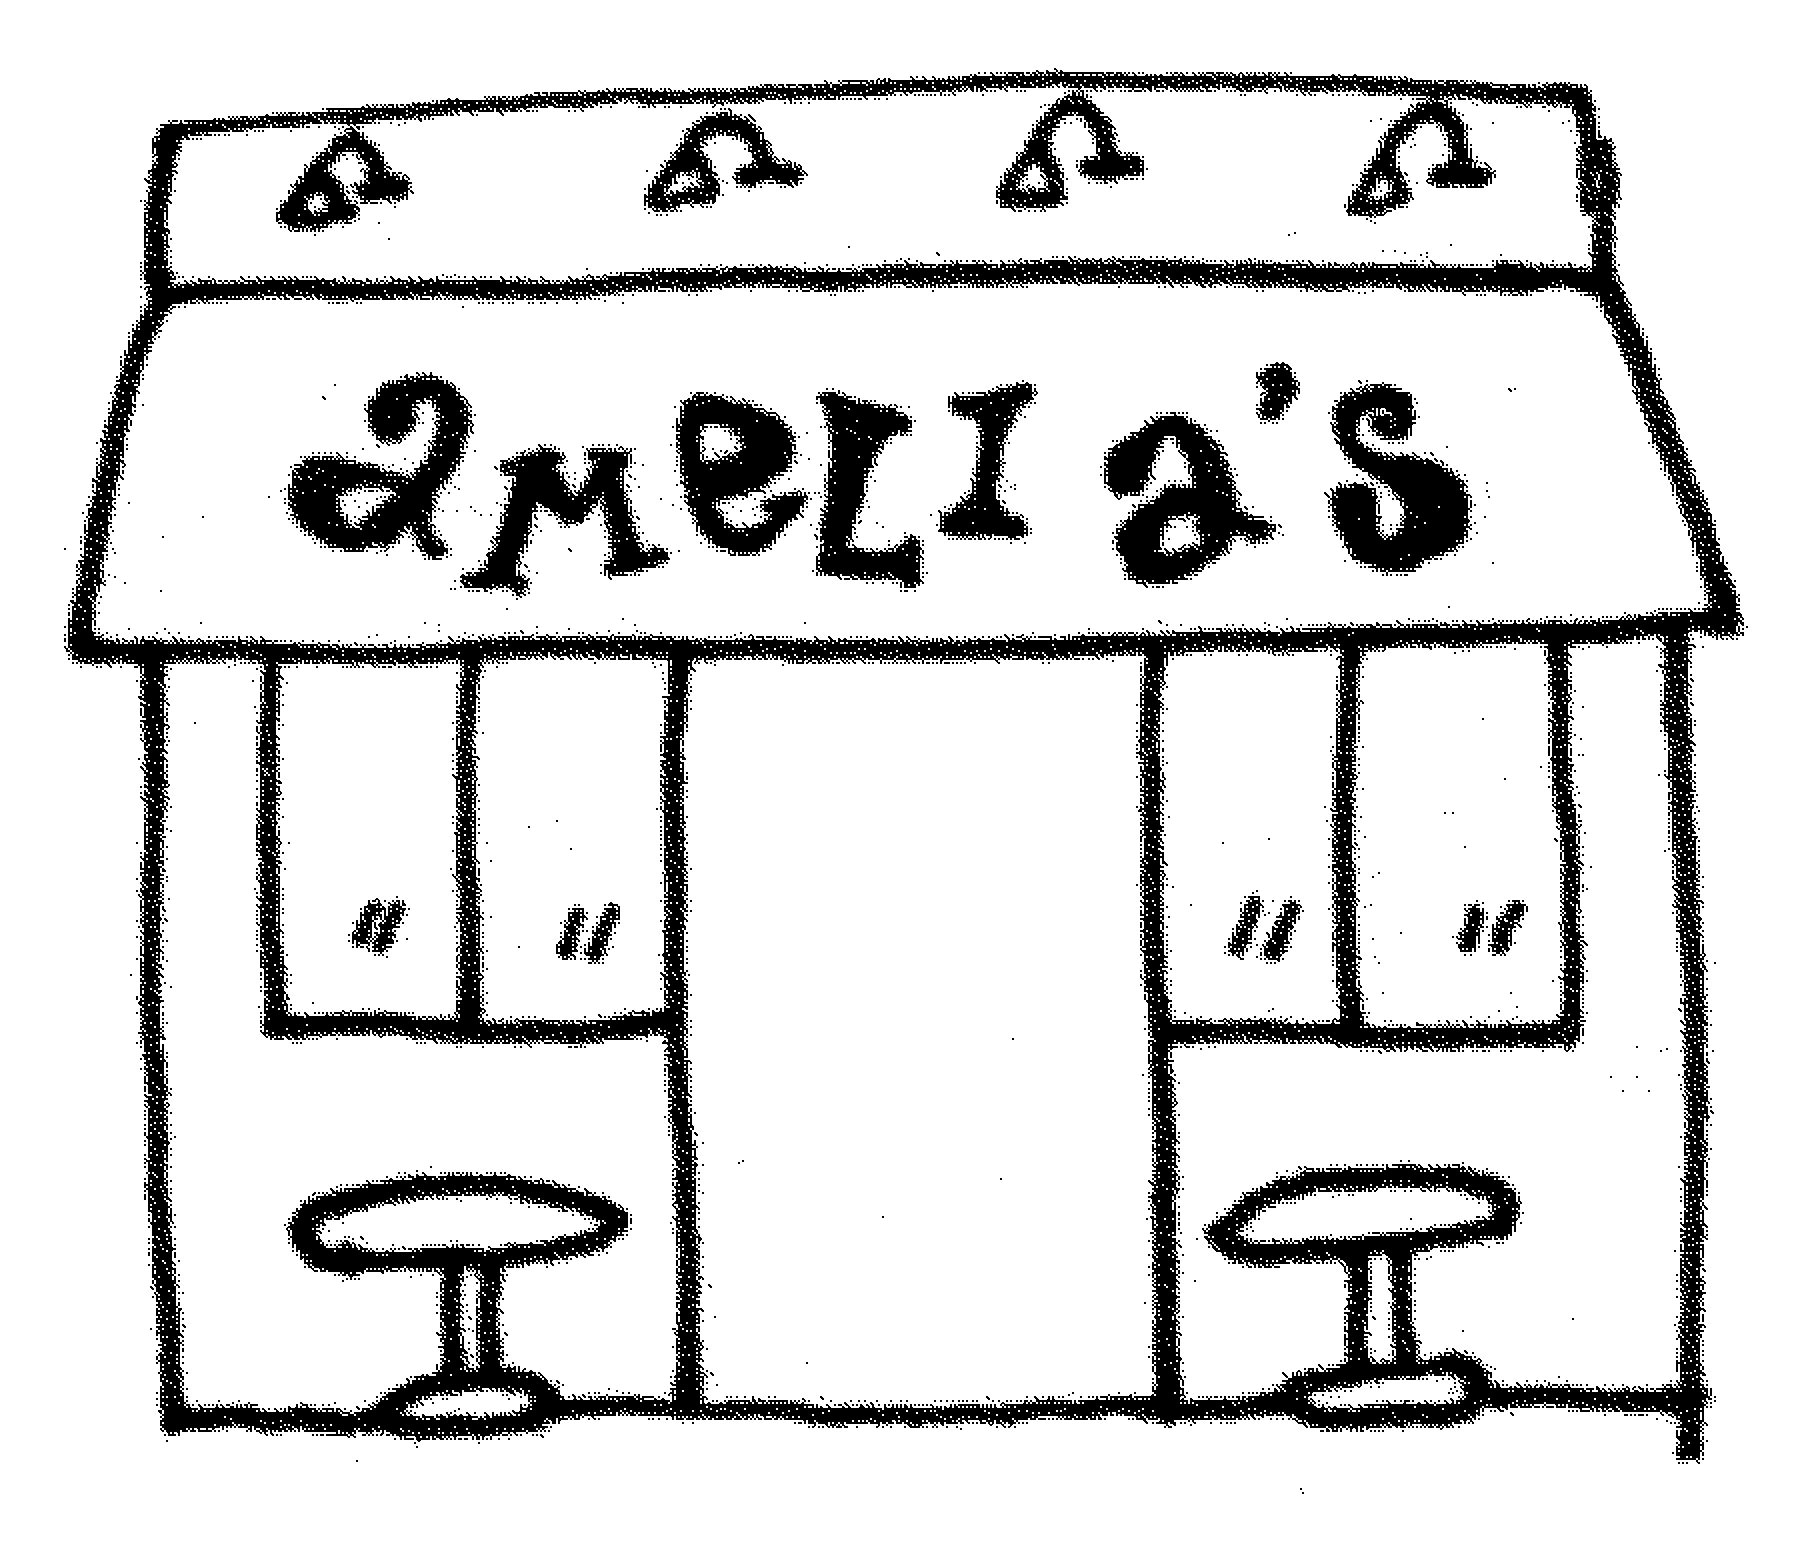 Restaurant Colouring Pages Page 2 Restaurant Coloring Pages to Print Of Coloring Pages for Restaurants to Print Collection